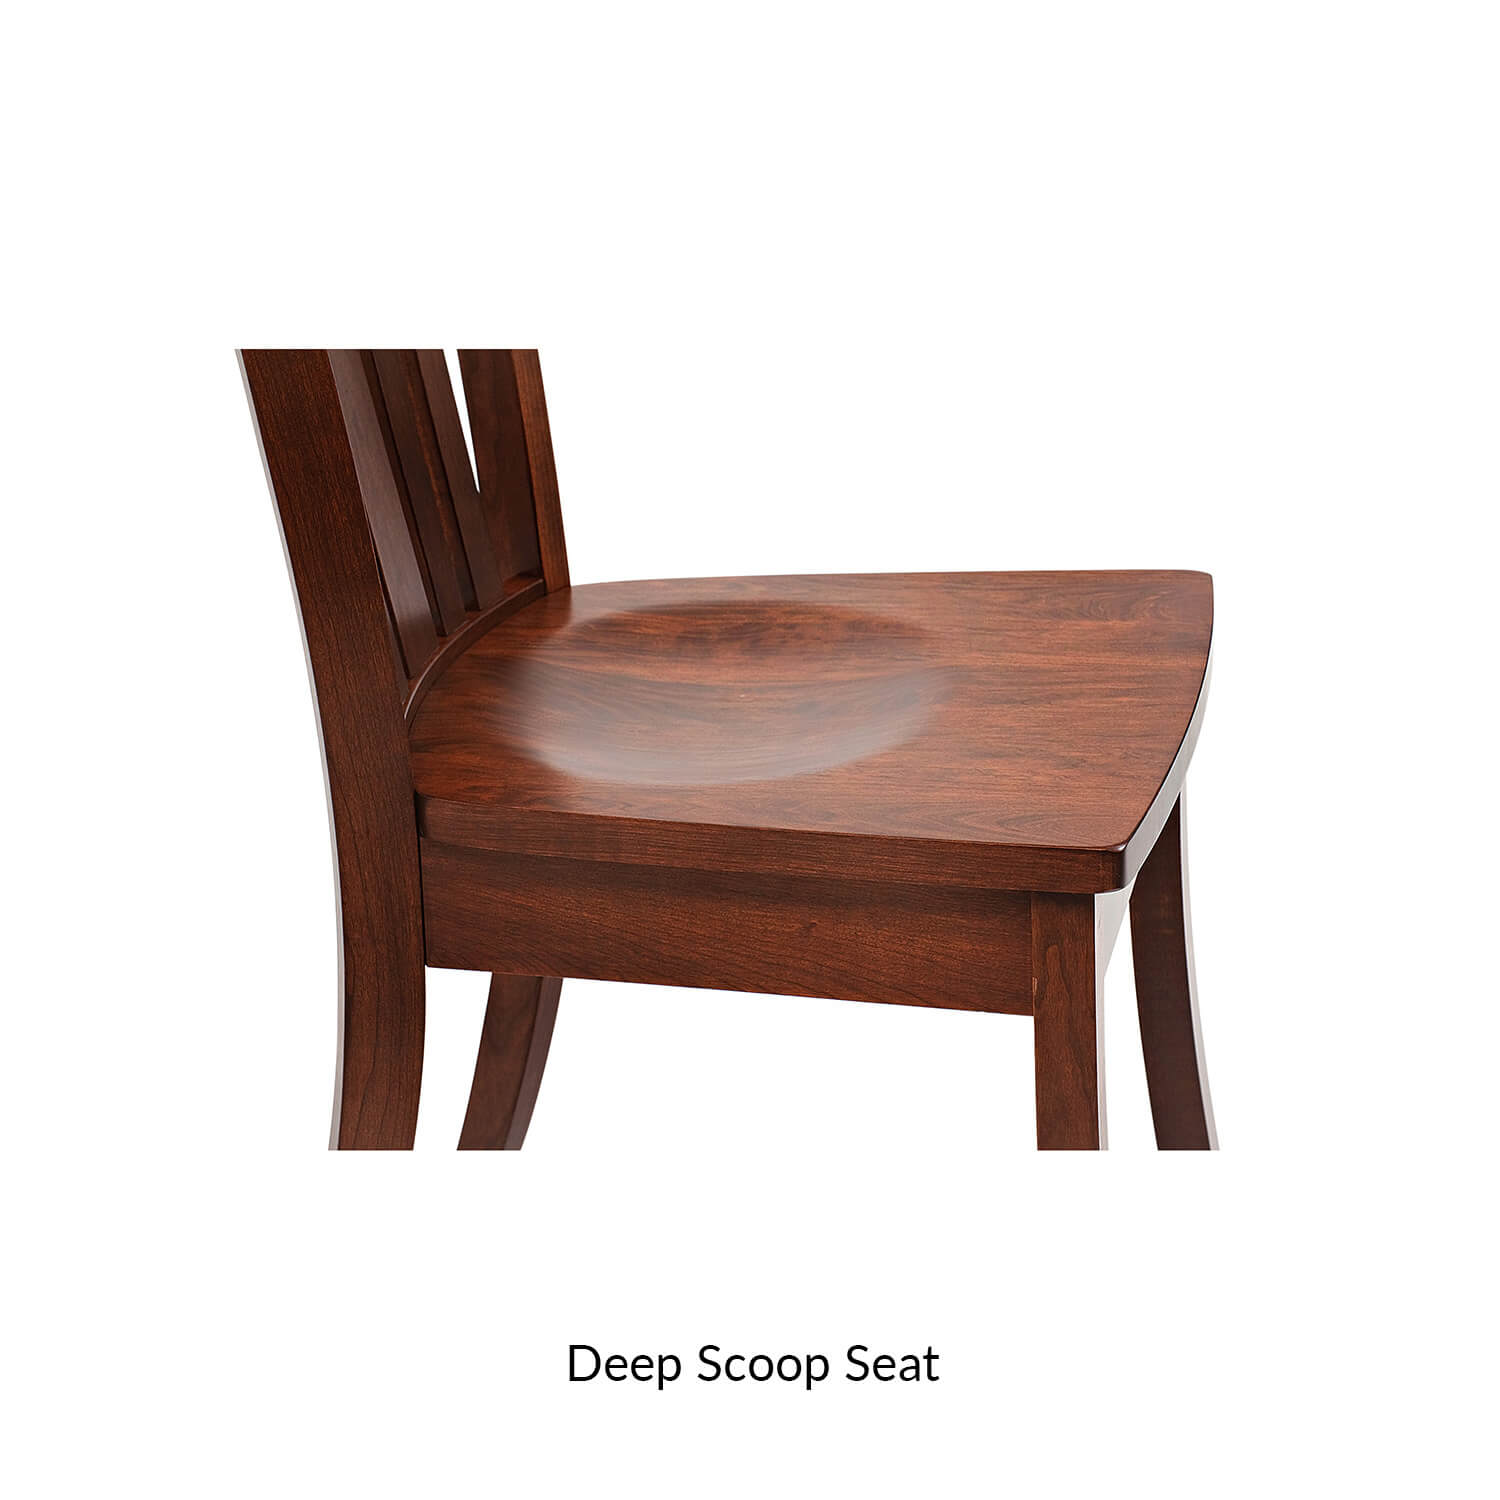 5.0-deep-scoop-seat.jpg